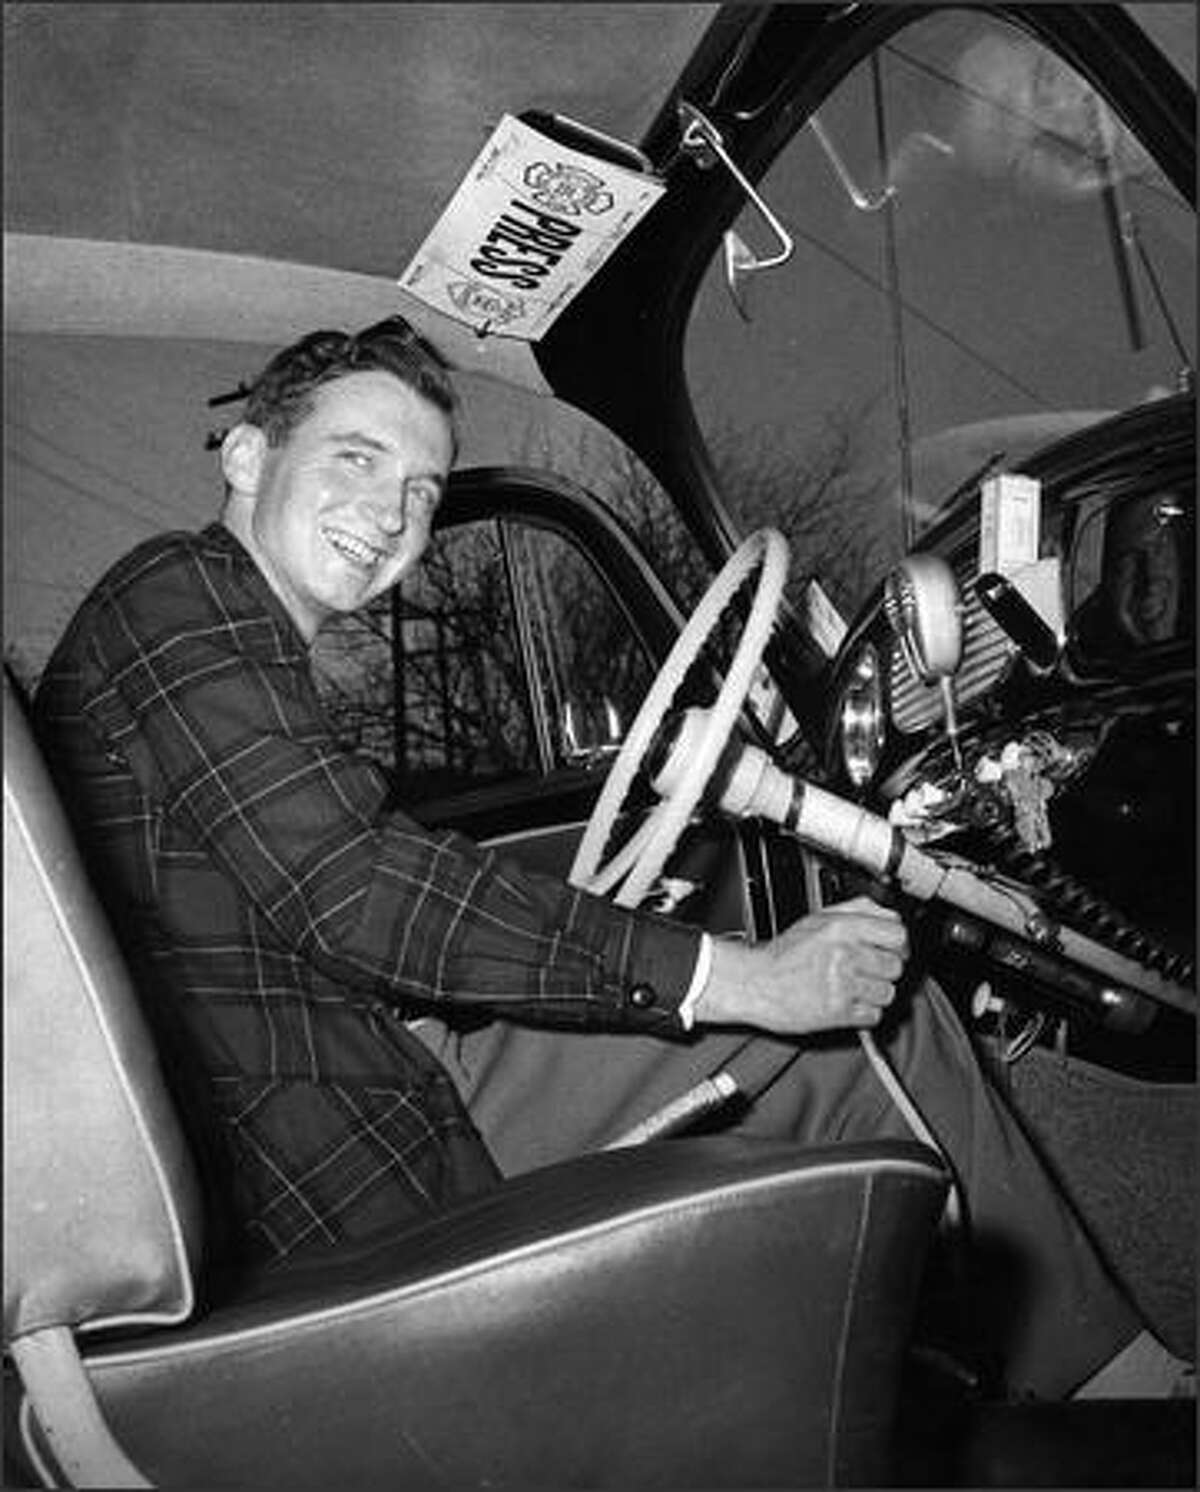 Phil H. Webber sitting in his Volkswagen in 1958.